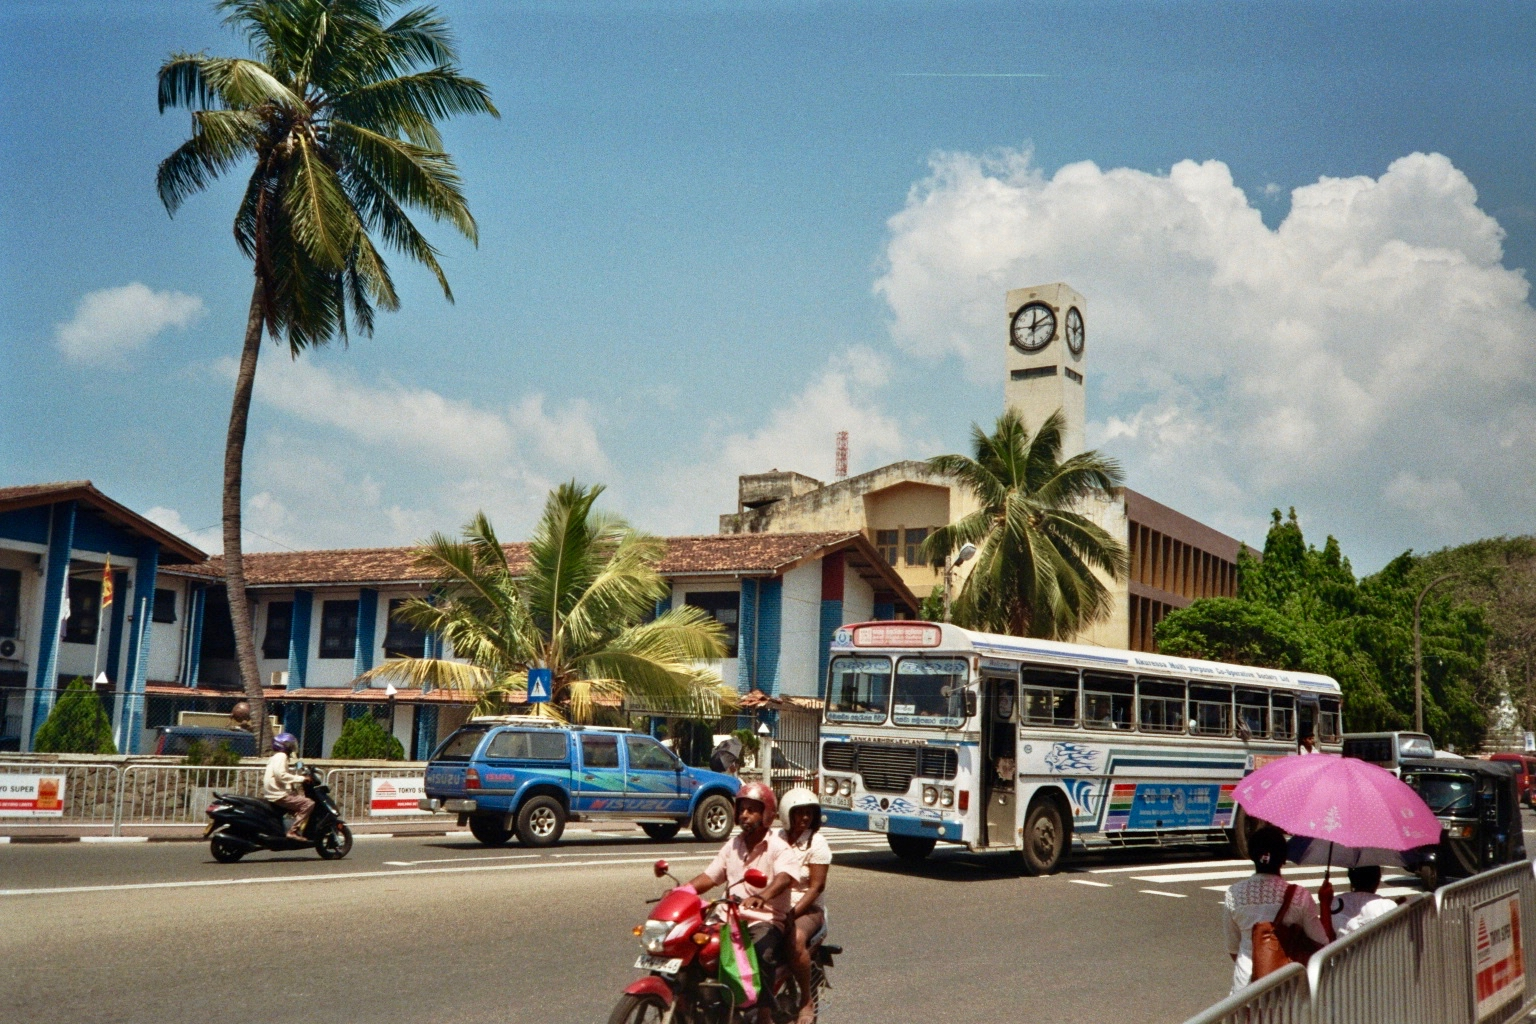 Sri Lanka analog - 150